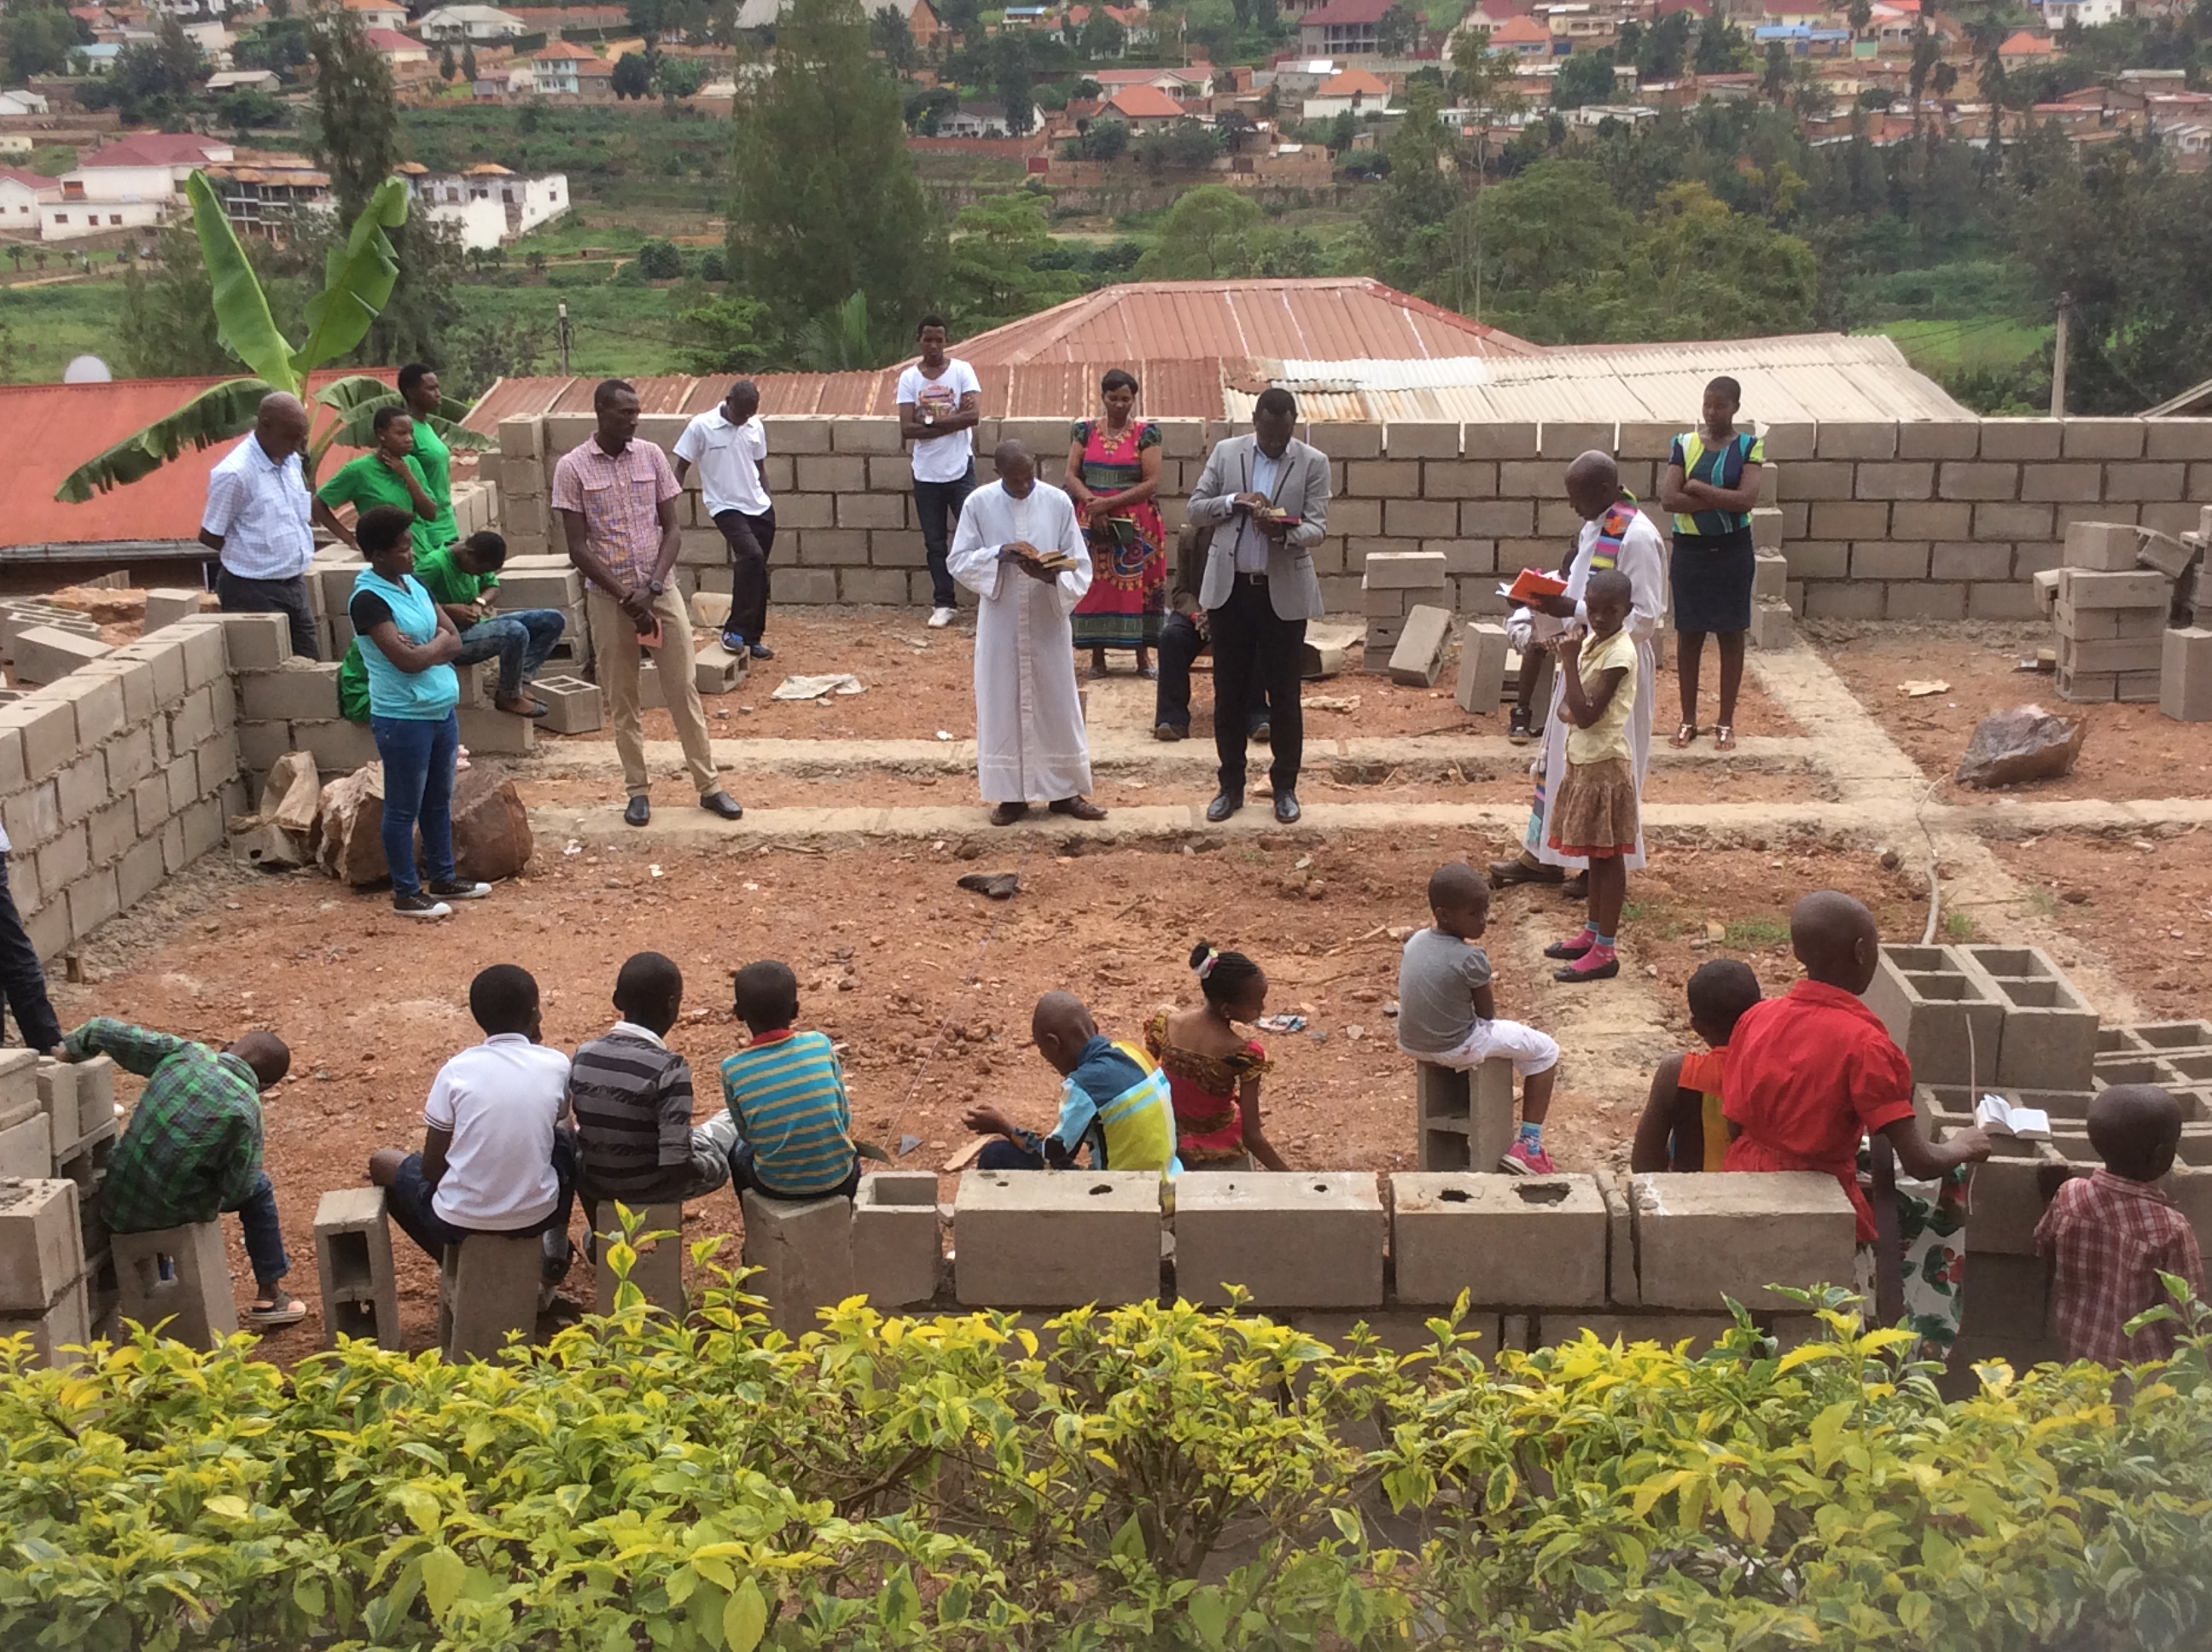 Partnership Is The Key Ingredient To Build New Clinic, School And LEADERSHIP In Rwanda